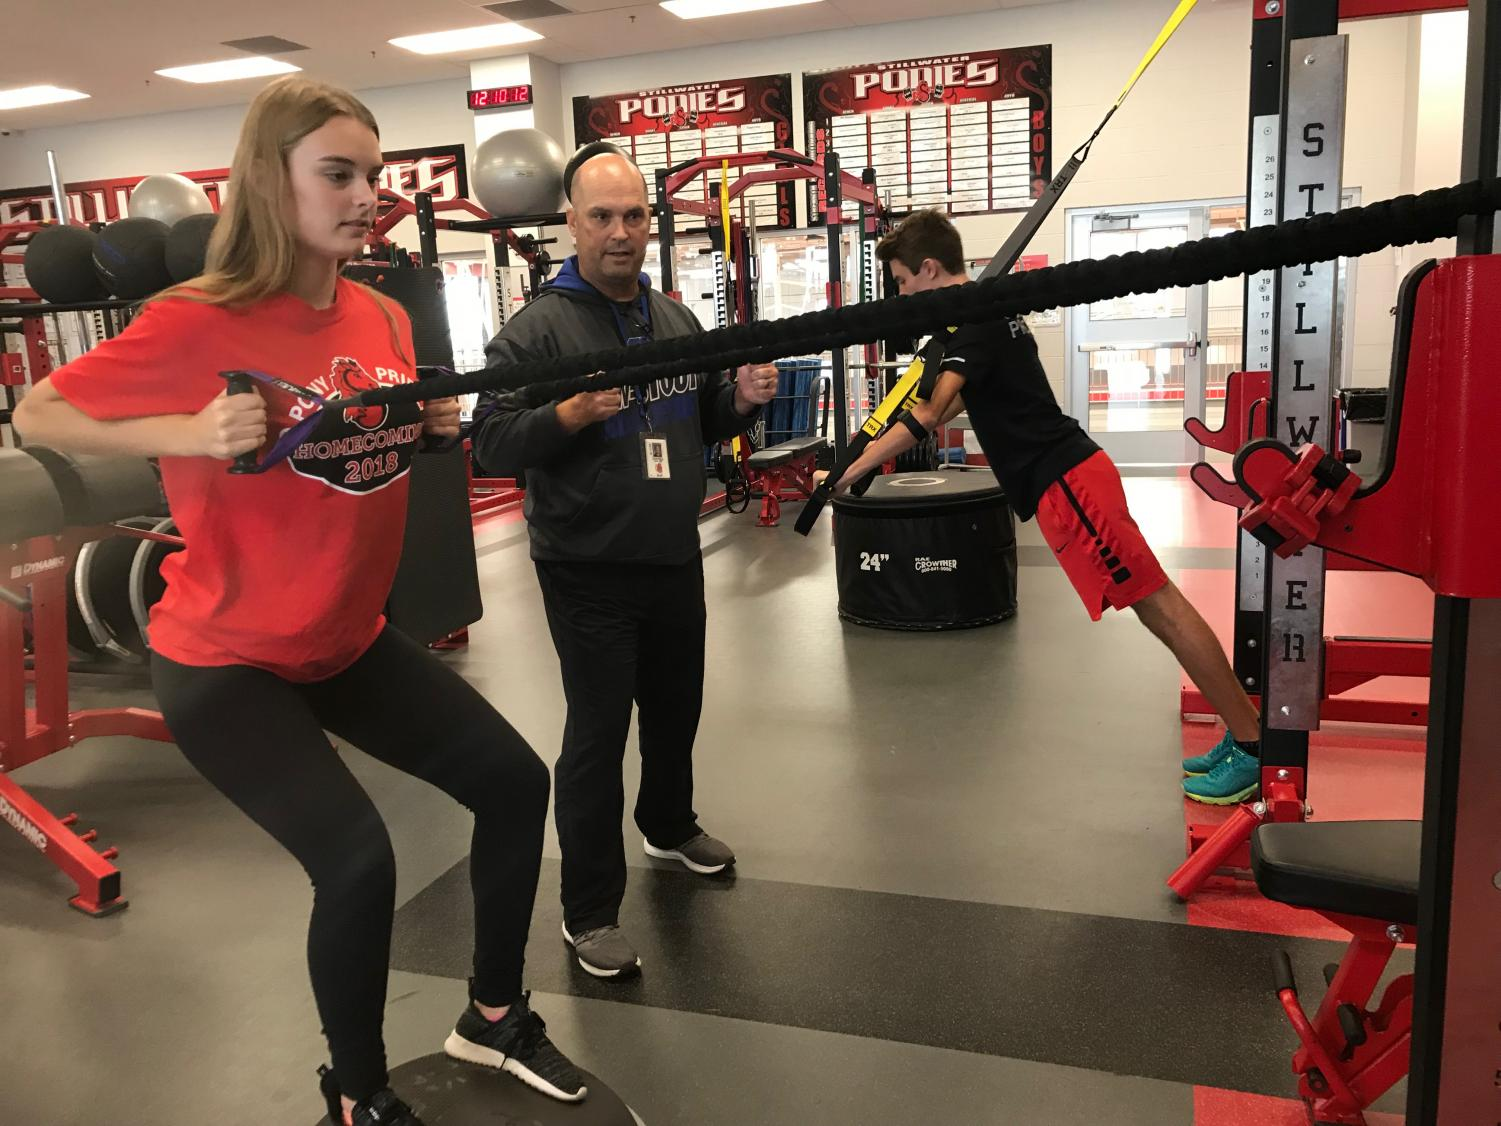 Salmi helping sophomores Sarah Hanselman and Ethan Vargas work out during physical education class.